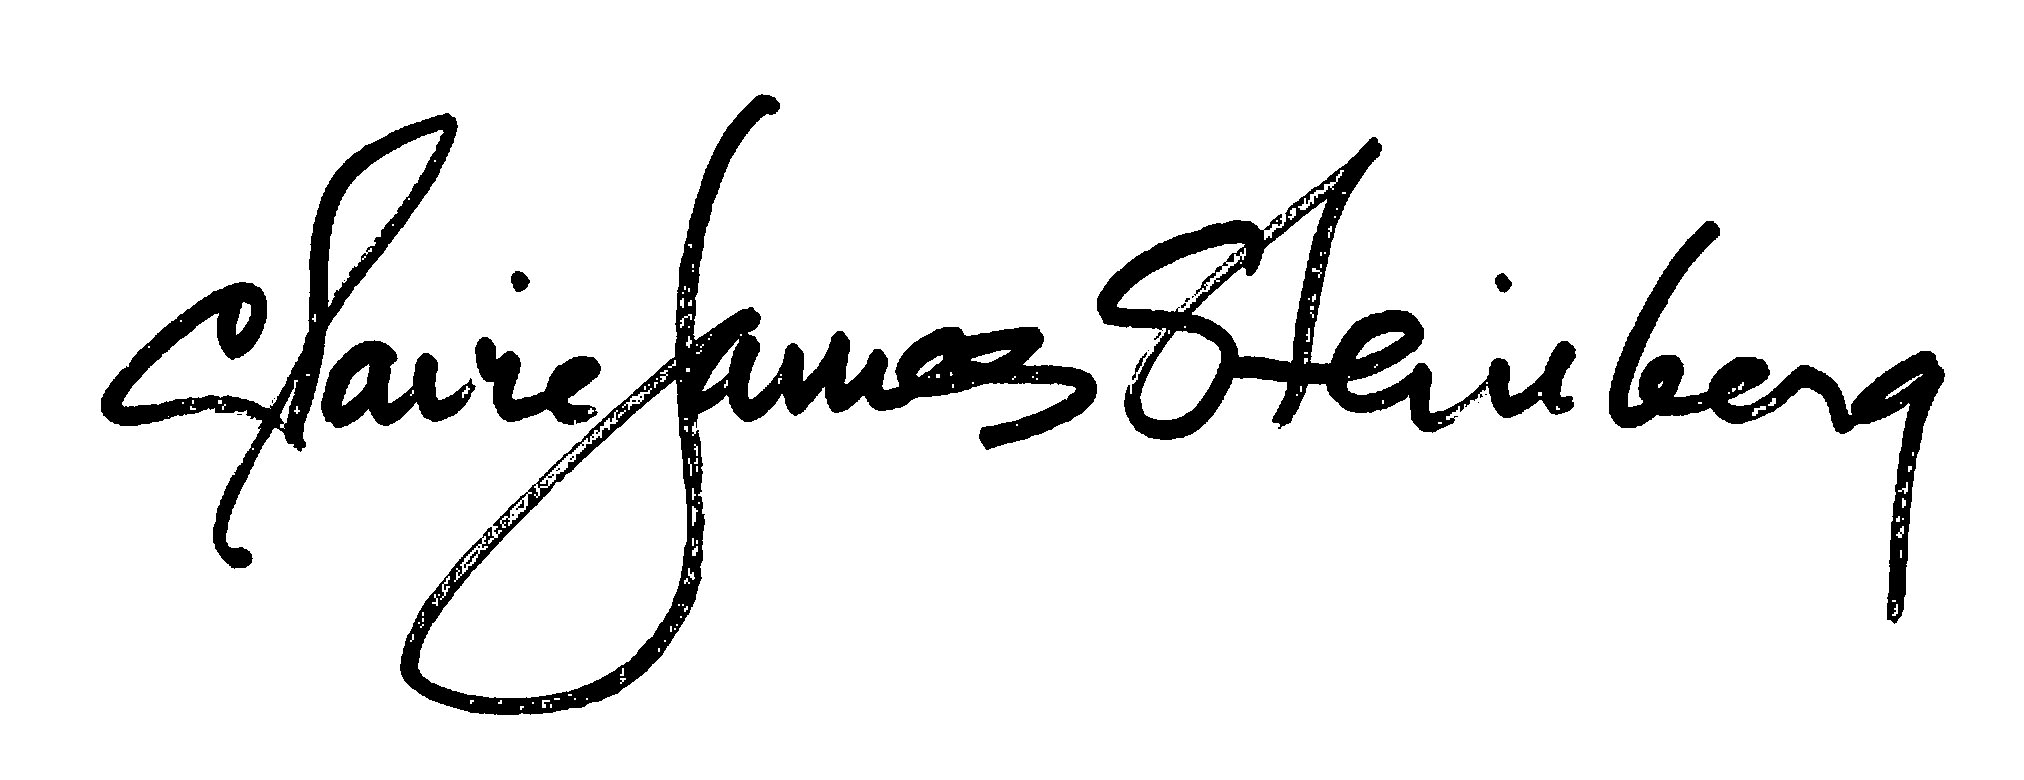 claire James Steinberg's Signature